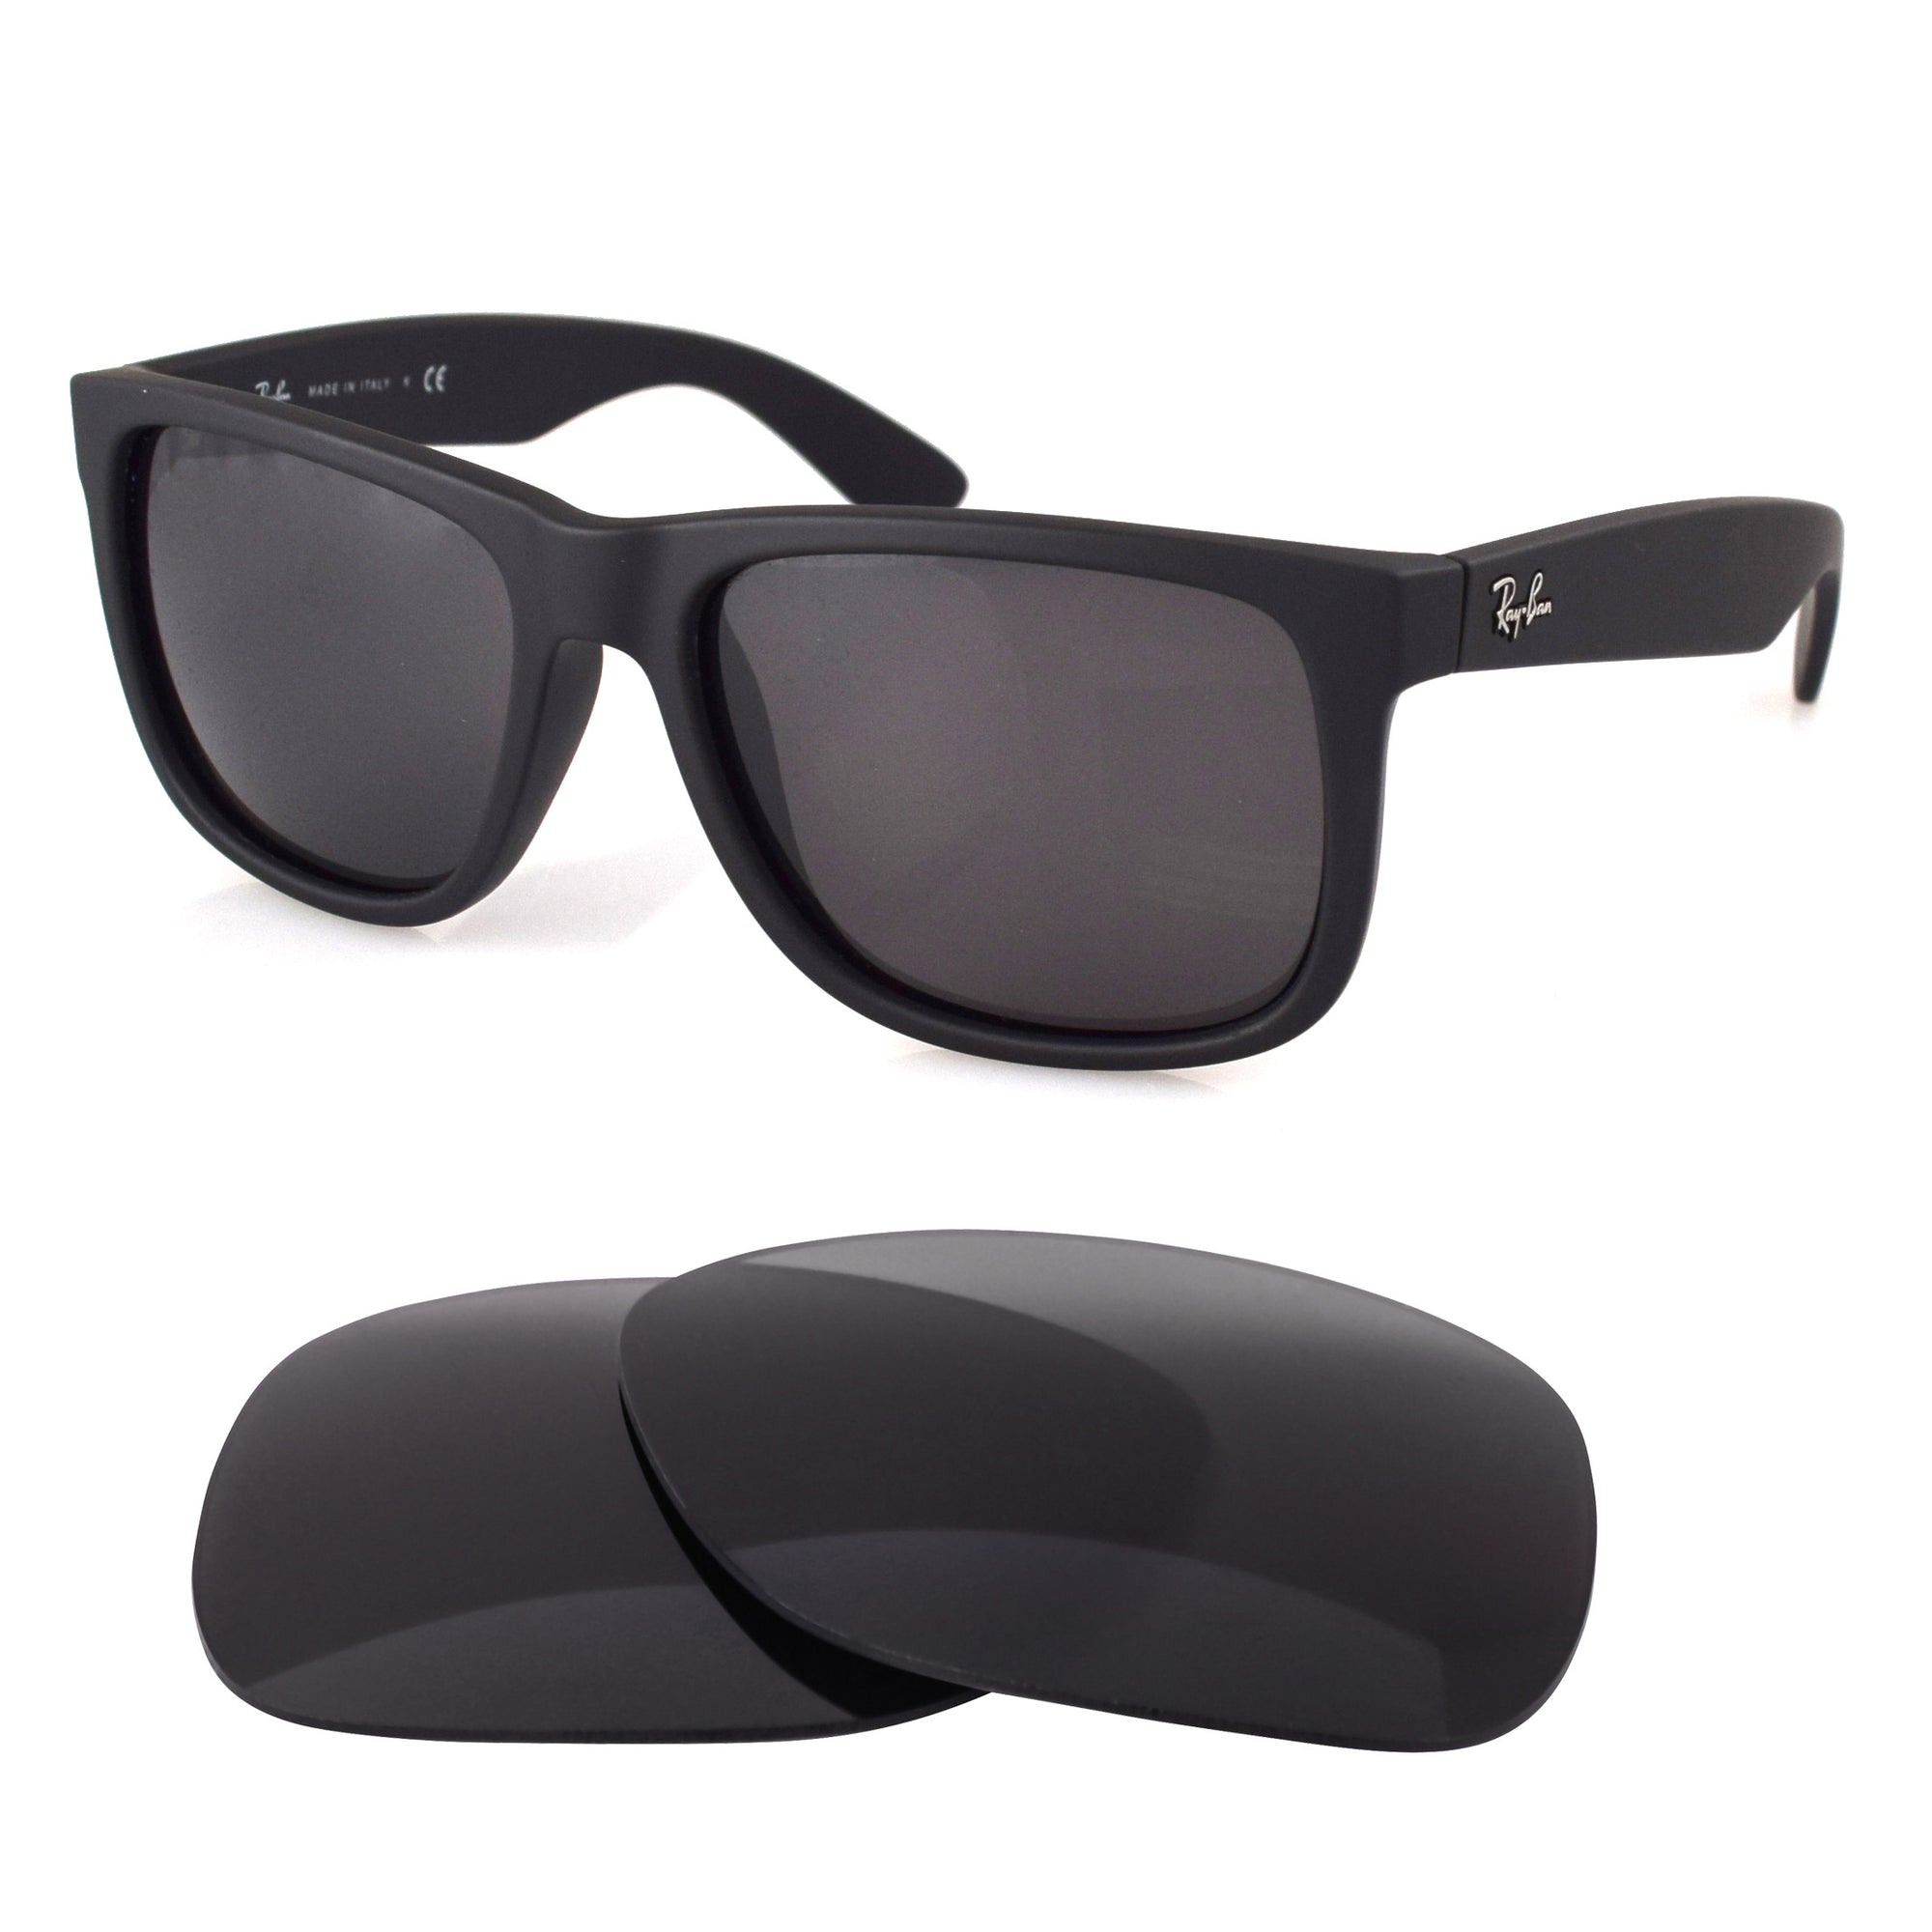 19f01d9855 sale ray ban justin rb4165 934a9 1fca3